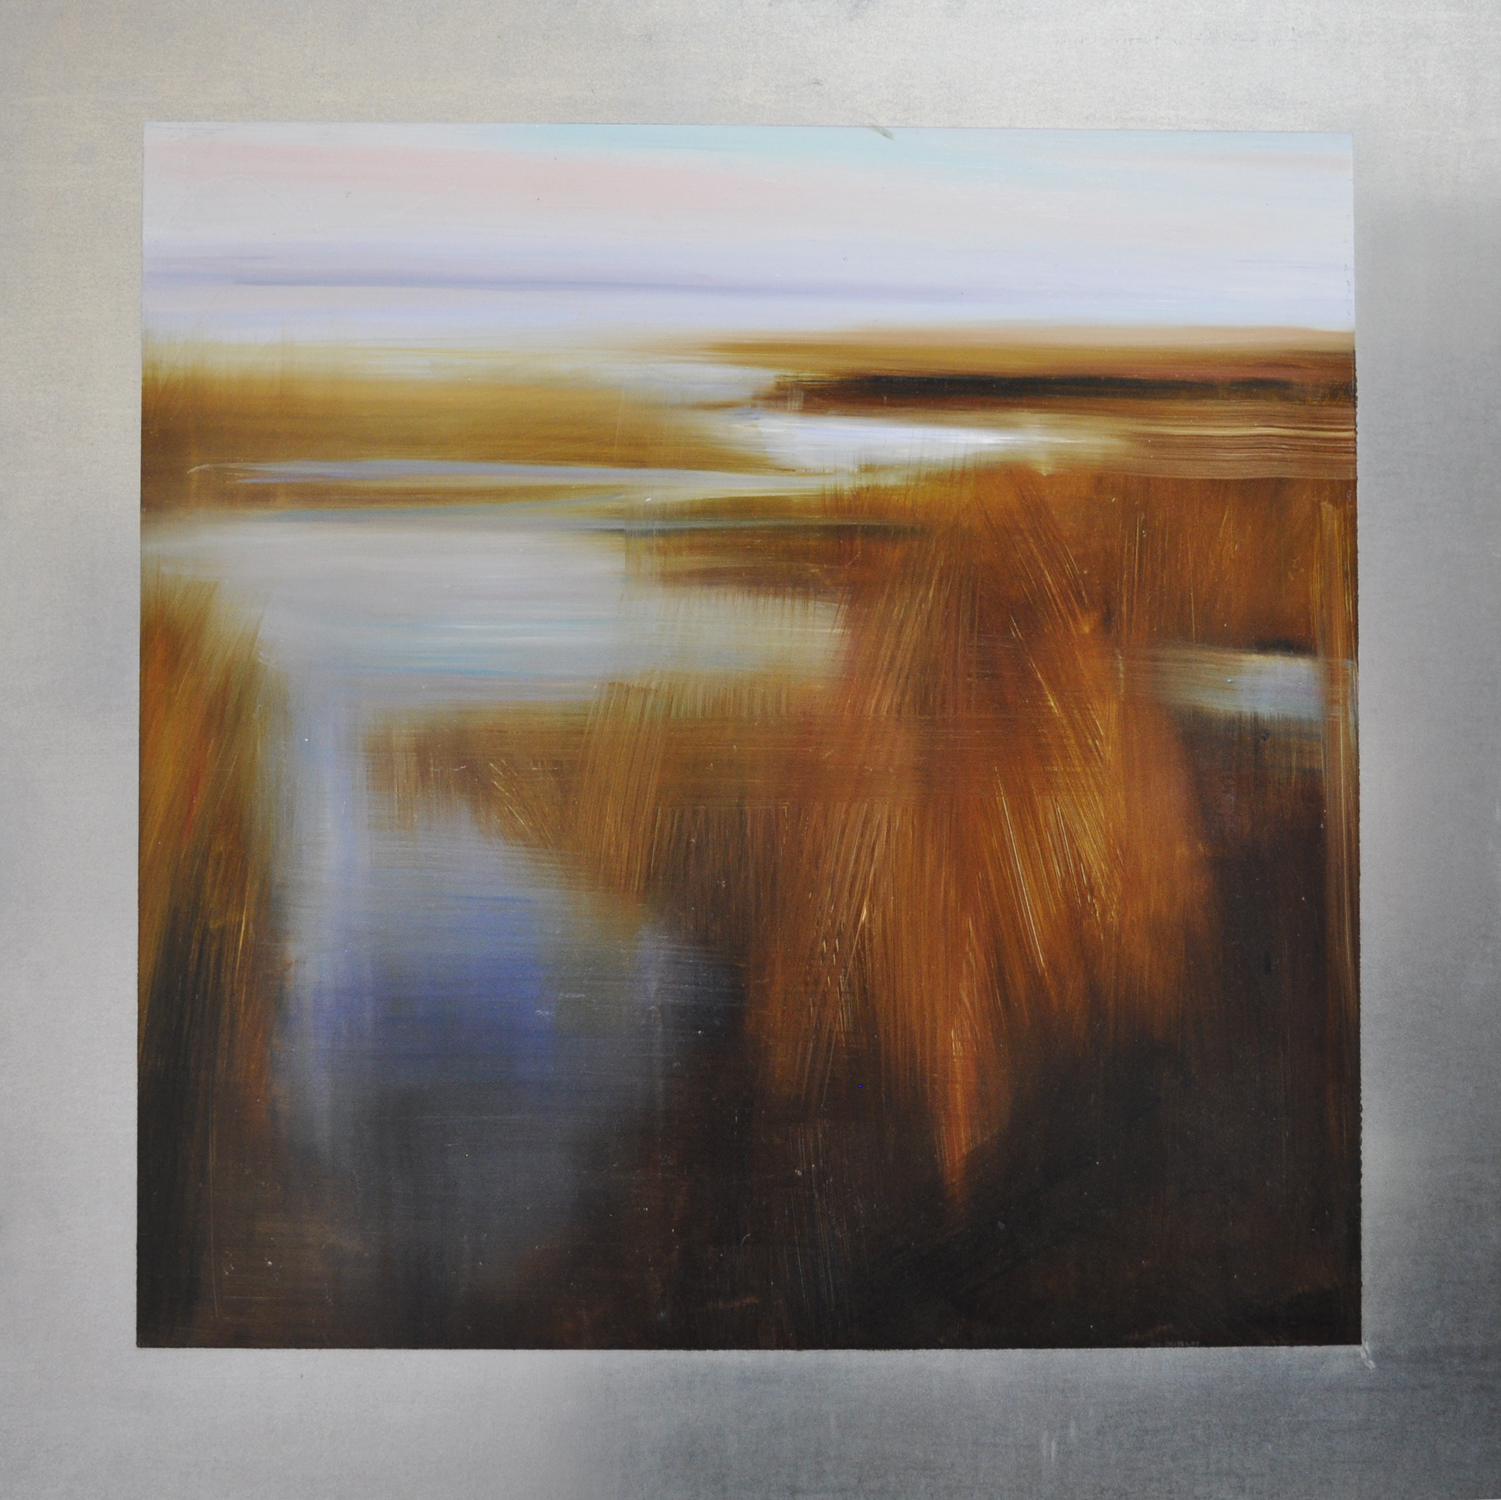 """Subtle Shoreline"", oil on steel, 36x36, $6,500"